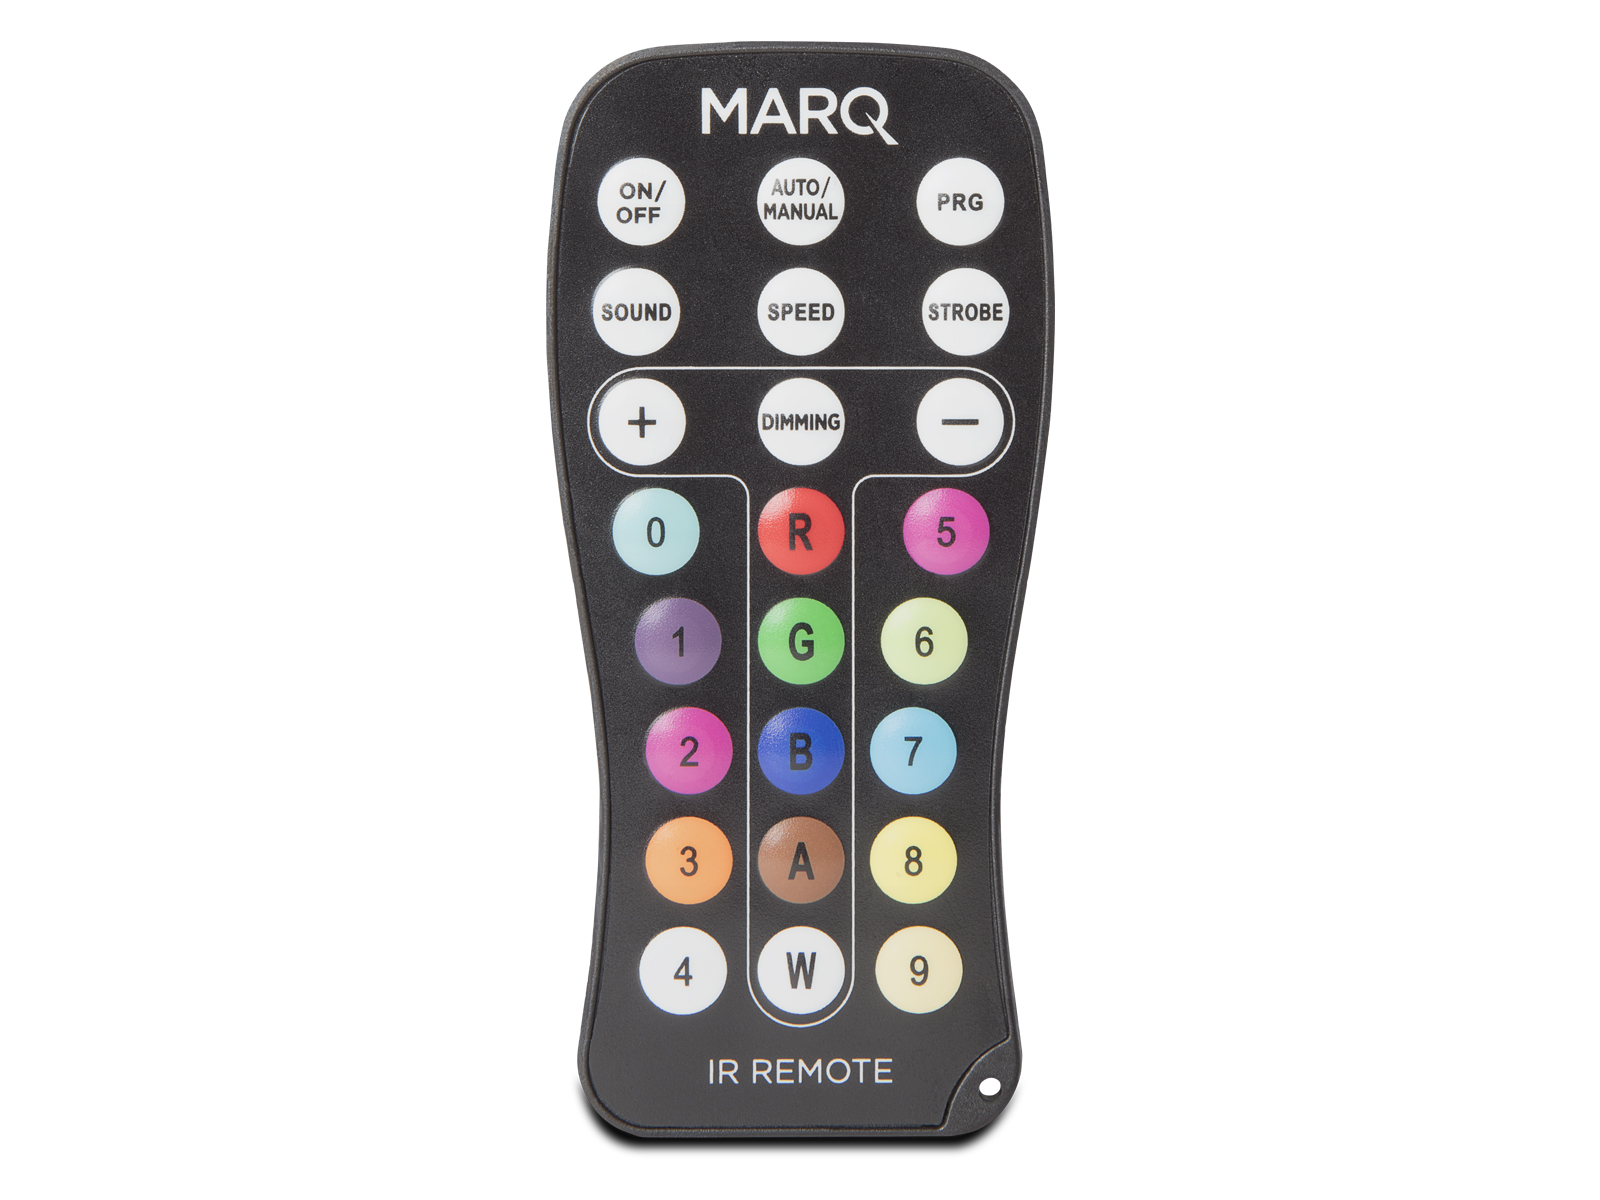 [QA02]Marq_Colormax_Remote_Ortho_Web.jpg